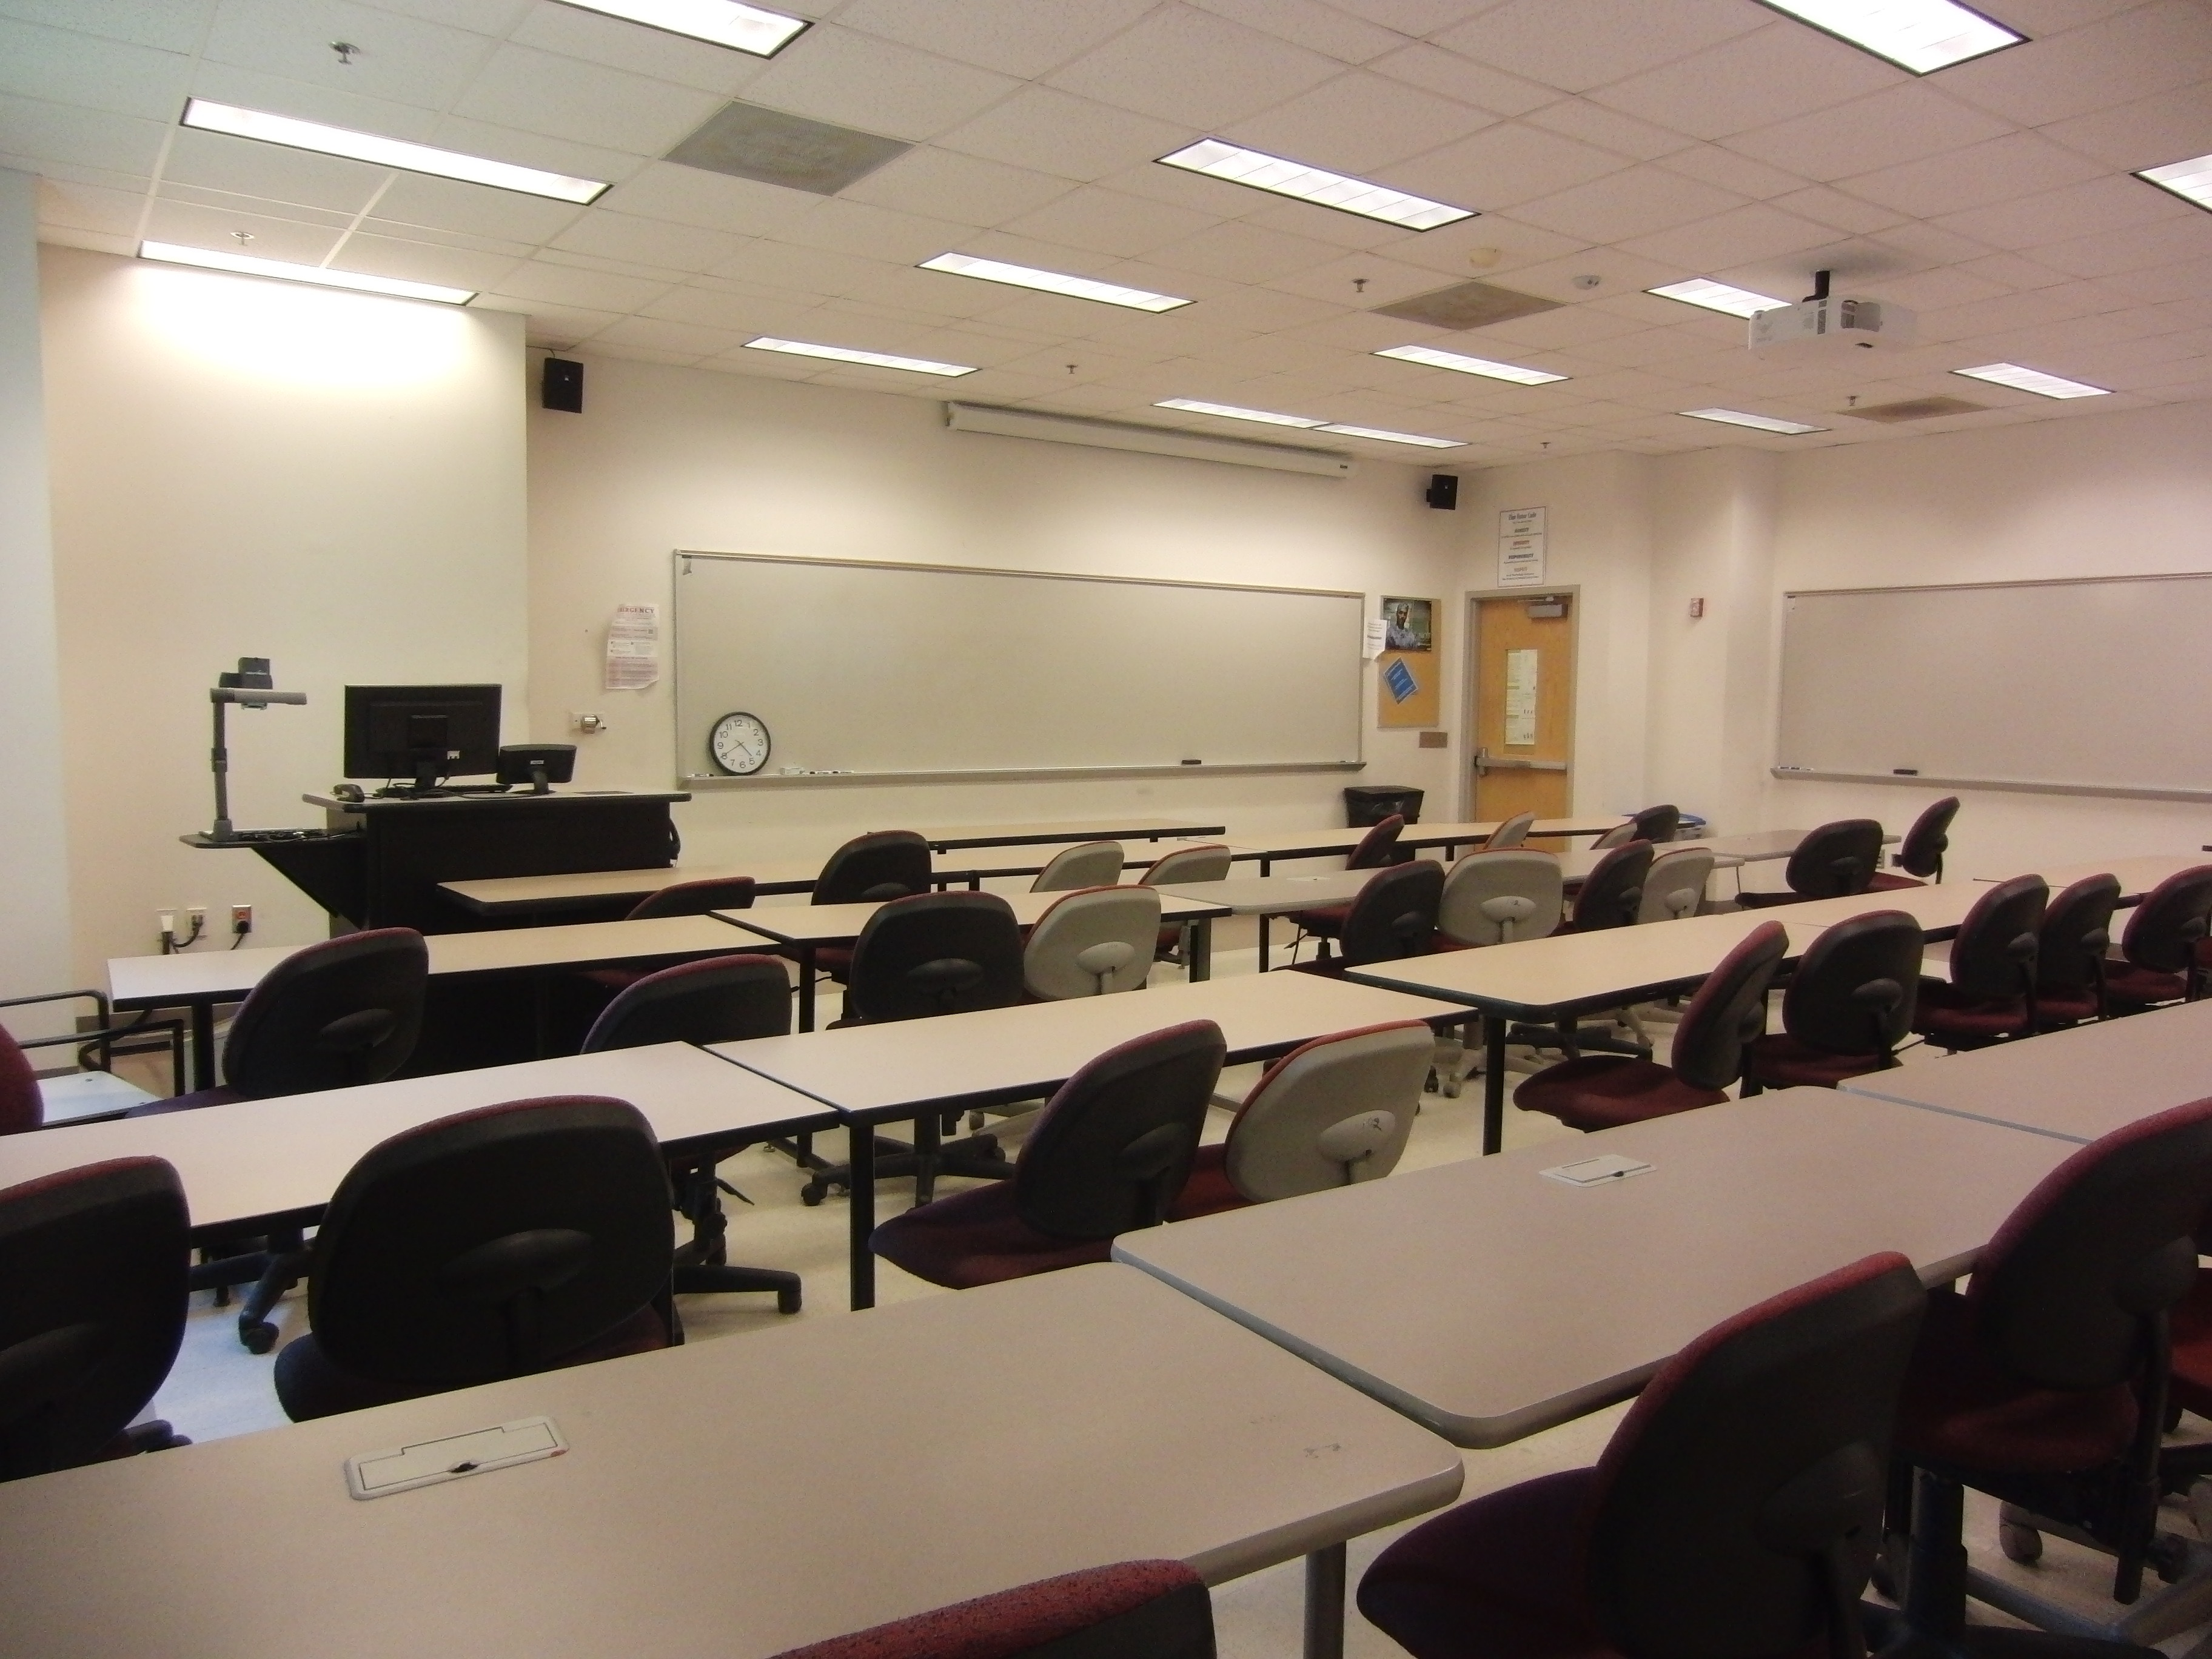 Photo of the classroom space taken from the back of the room showing stationary student desks, mobile student chairs, and the exit for the room